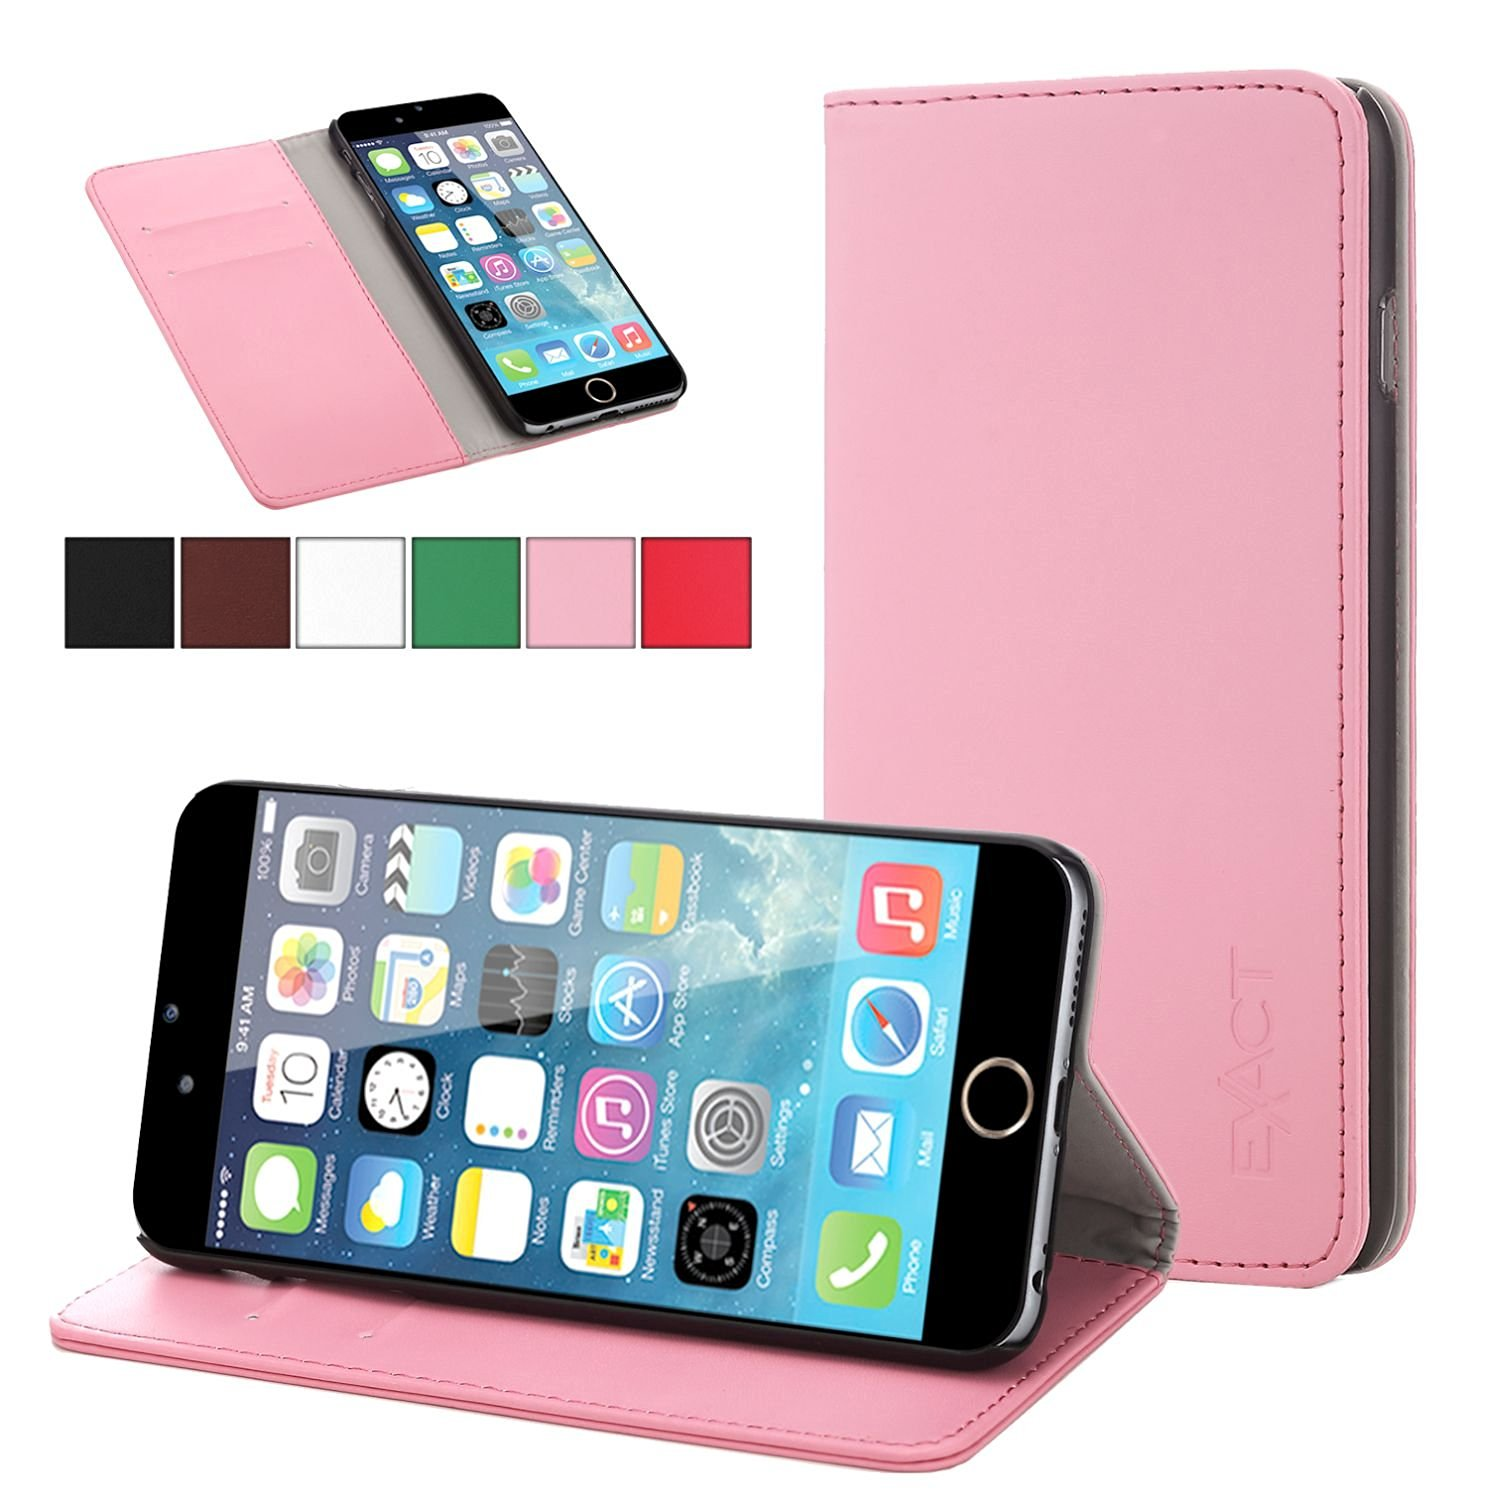 iPhone 6 Plus Case - Exact Apple iPhone 6 Plus 5.5 Case [BillFOLD Series] - PU Leather Wallet Flip Cover Case for Apple iPhone 6 Plus (5.5-inch)Pink